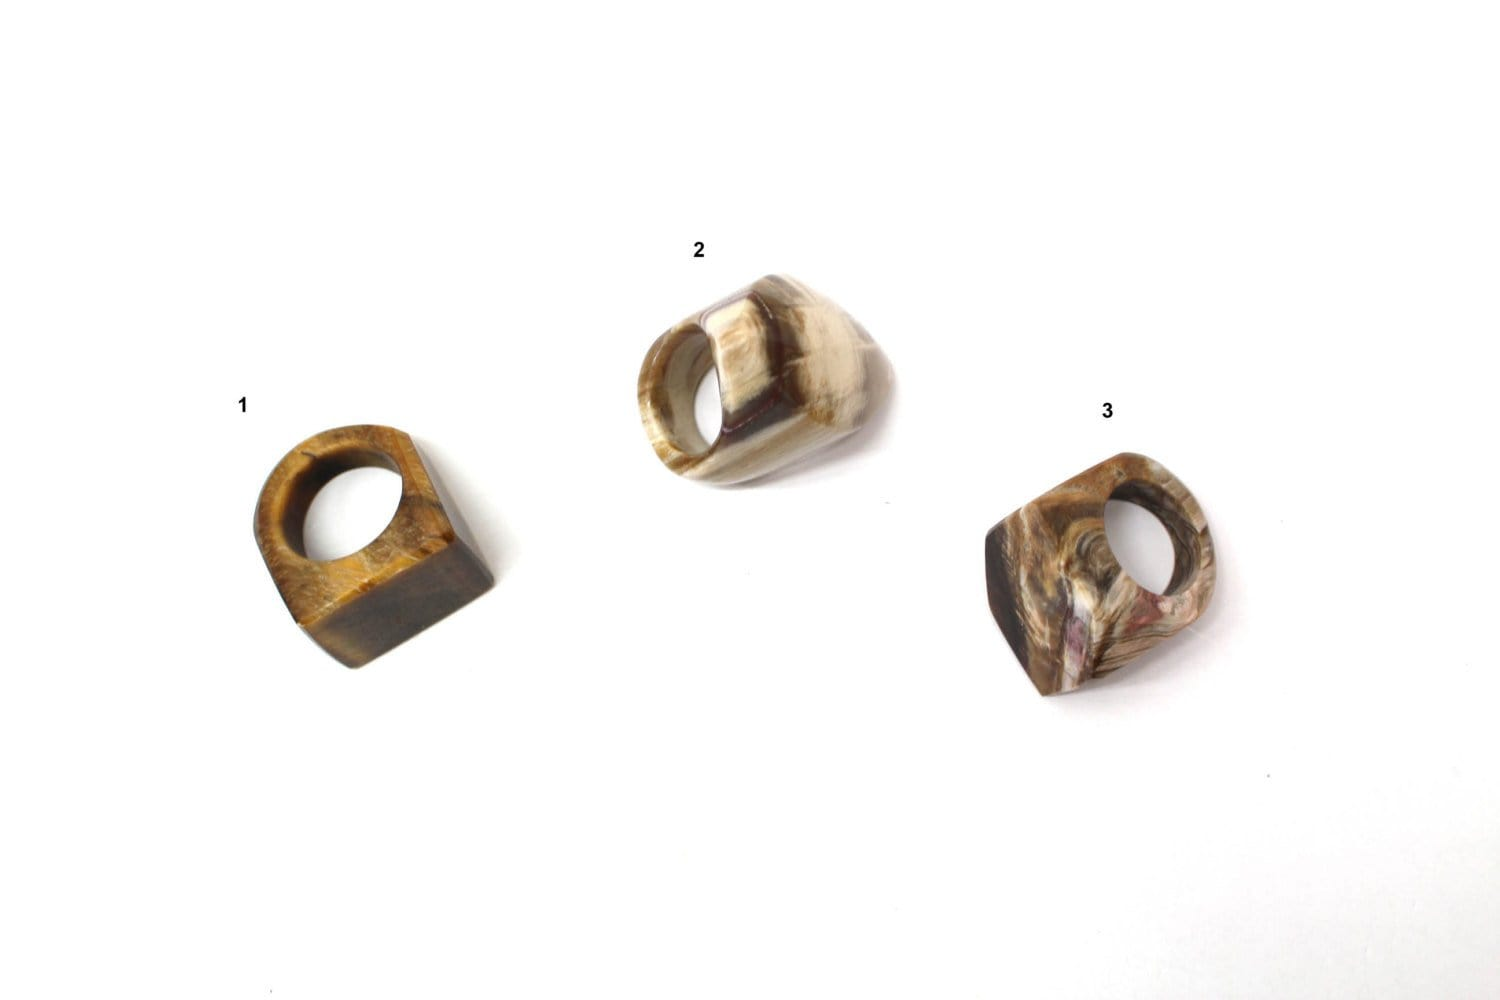 Rings - Petrified Wood / Mixed Stones Rings - Tiger Eye - Natural Jewelry - Brazilian Stones (RK11B11-01)